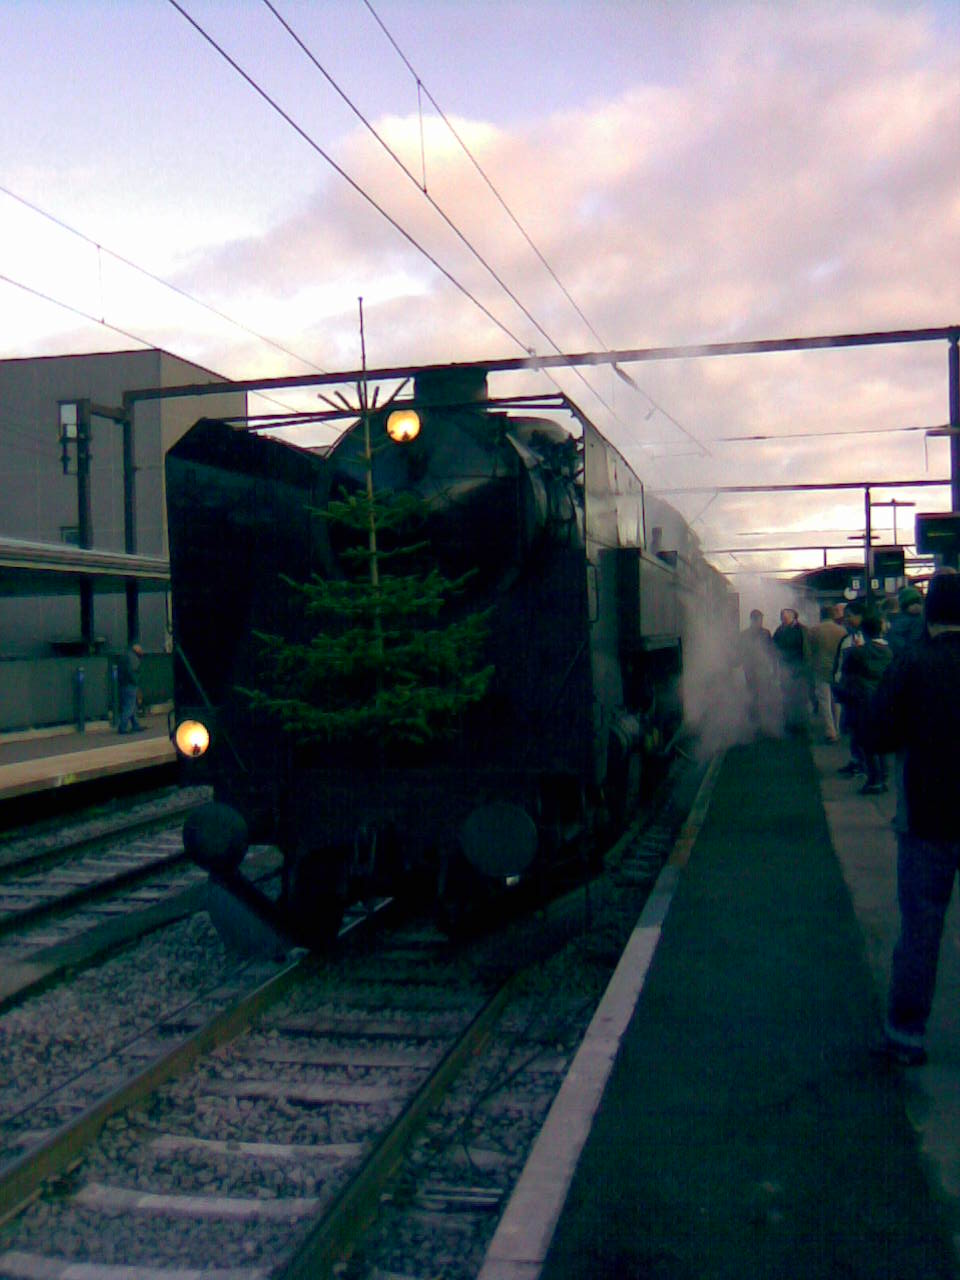 Museum Steam Train at Roskilde Railway Station